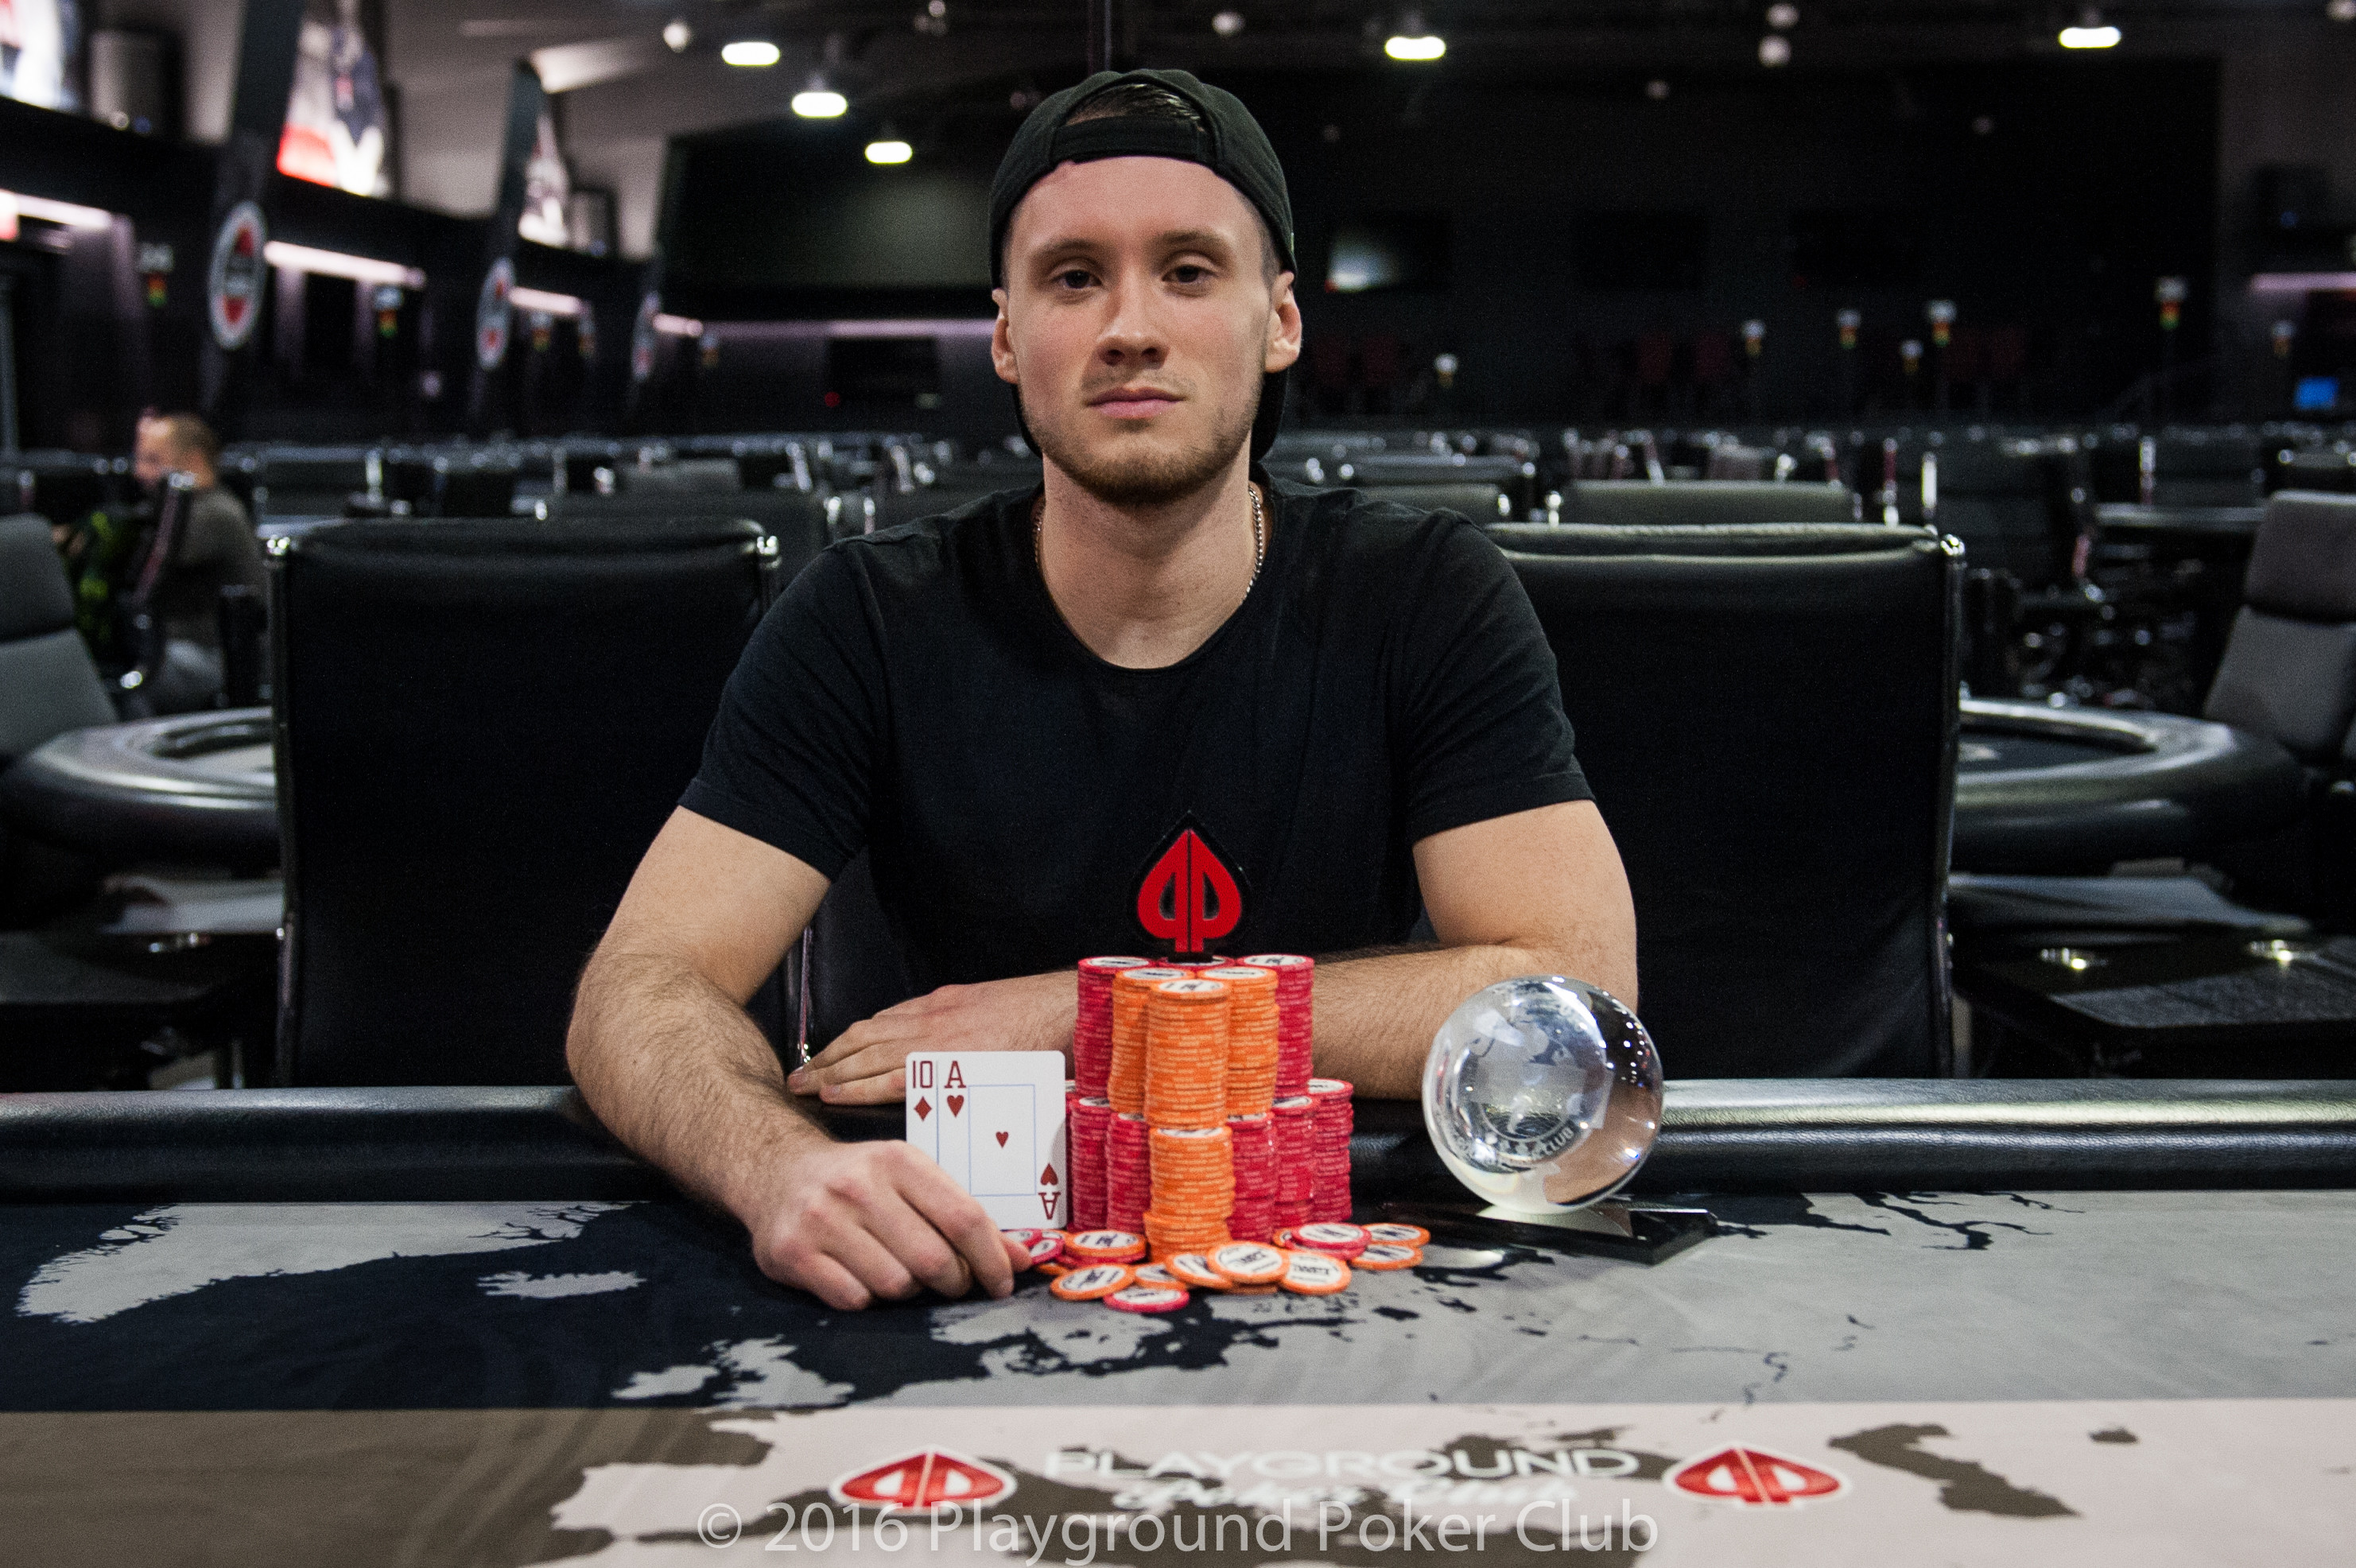 World Cup of Cards in Full Swing: Tommy Coulombe Wins All-Stars for Starlight Tournament... 106